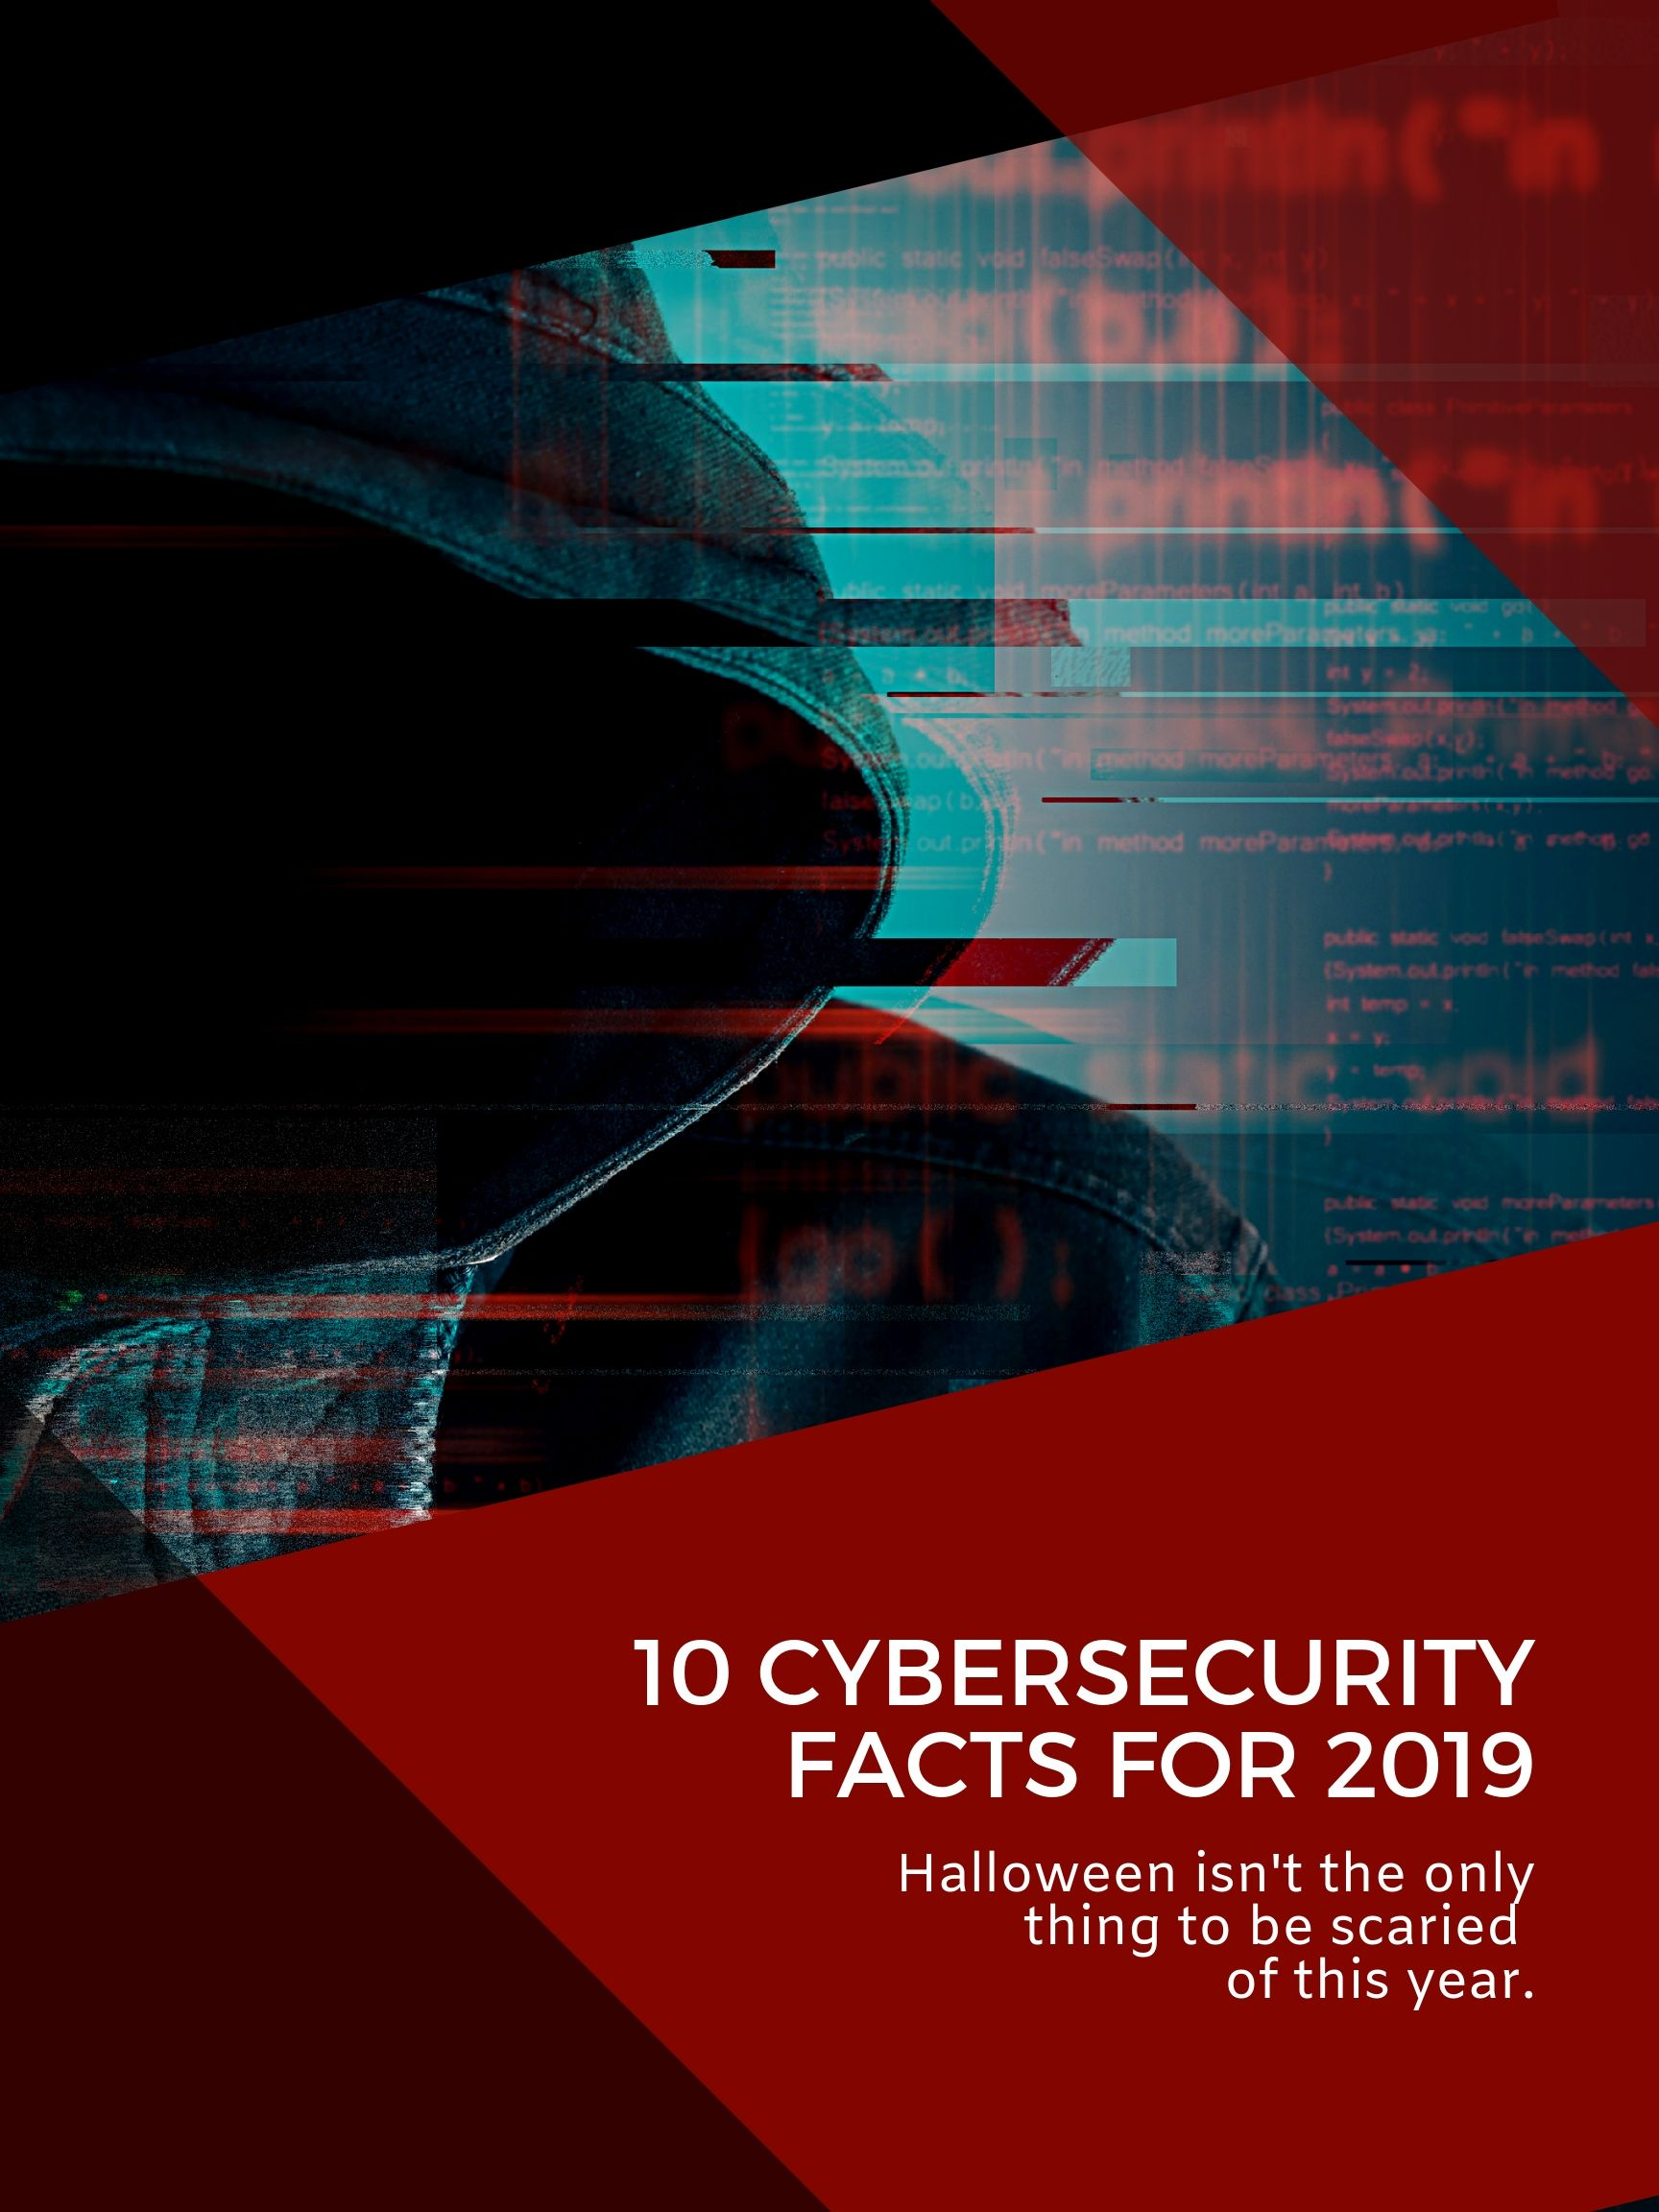 cybersecurity cybercrime Top Ten Cybersecurity Facts and Statistics for 2019